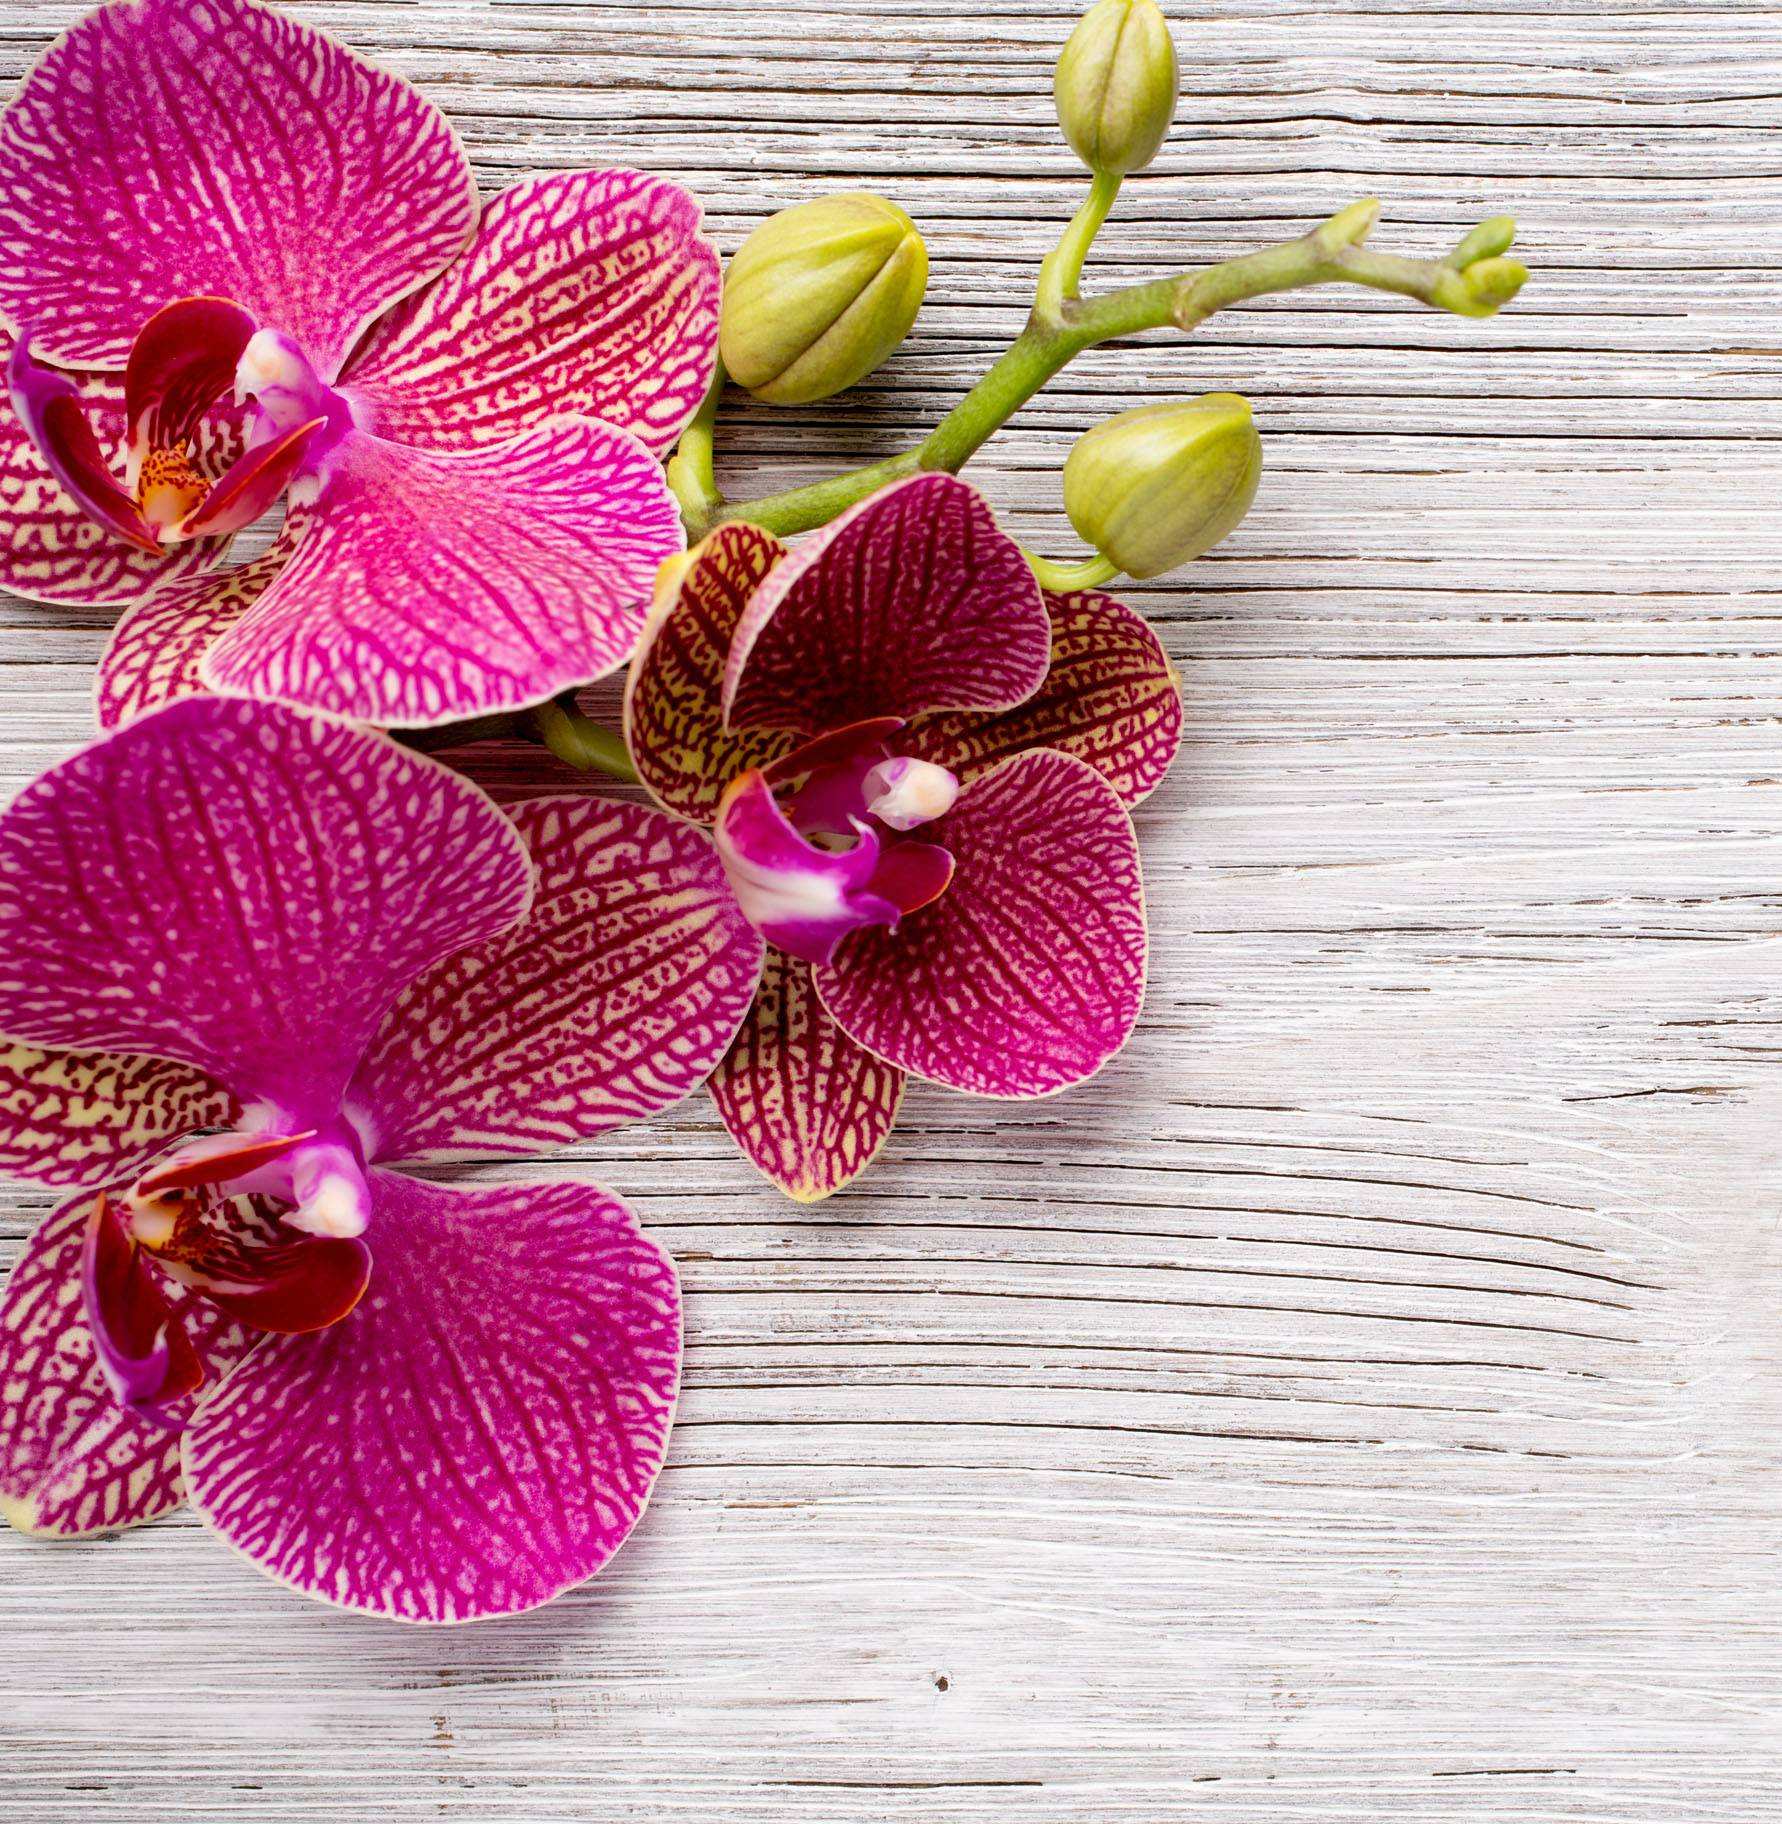 ORCHIDEE : UNE BEAUTE APPRIVOISEE